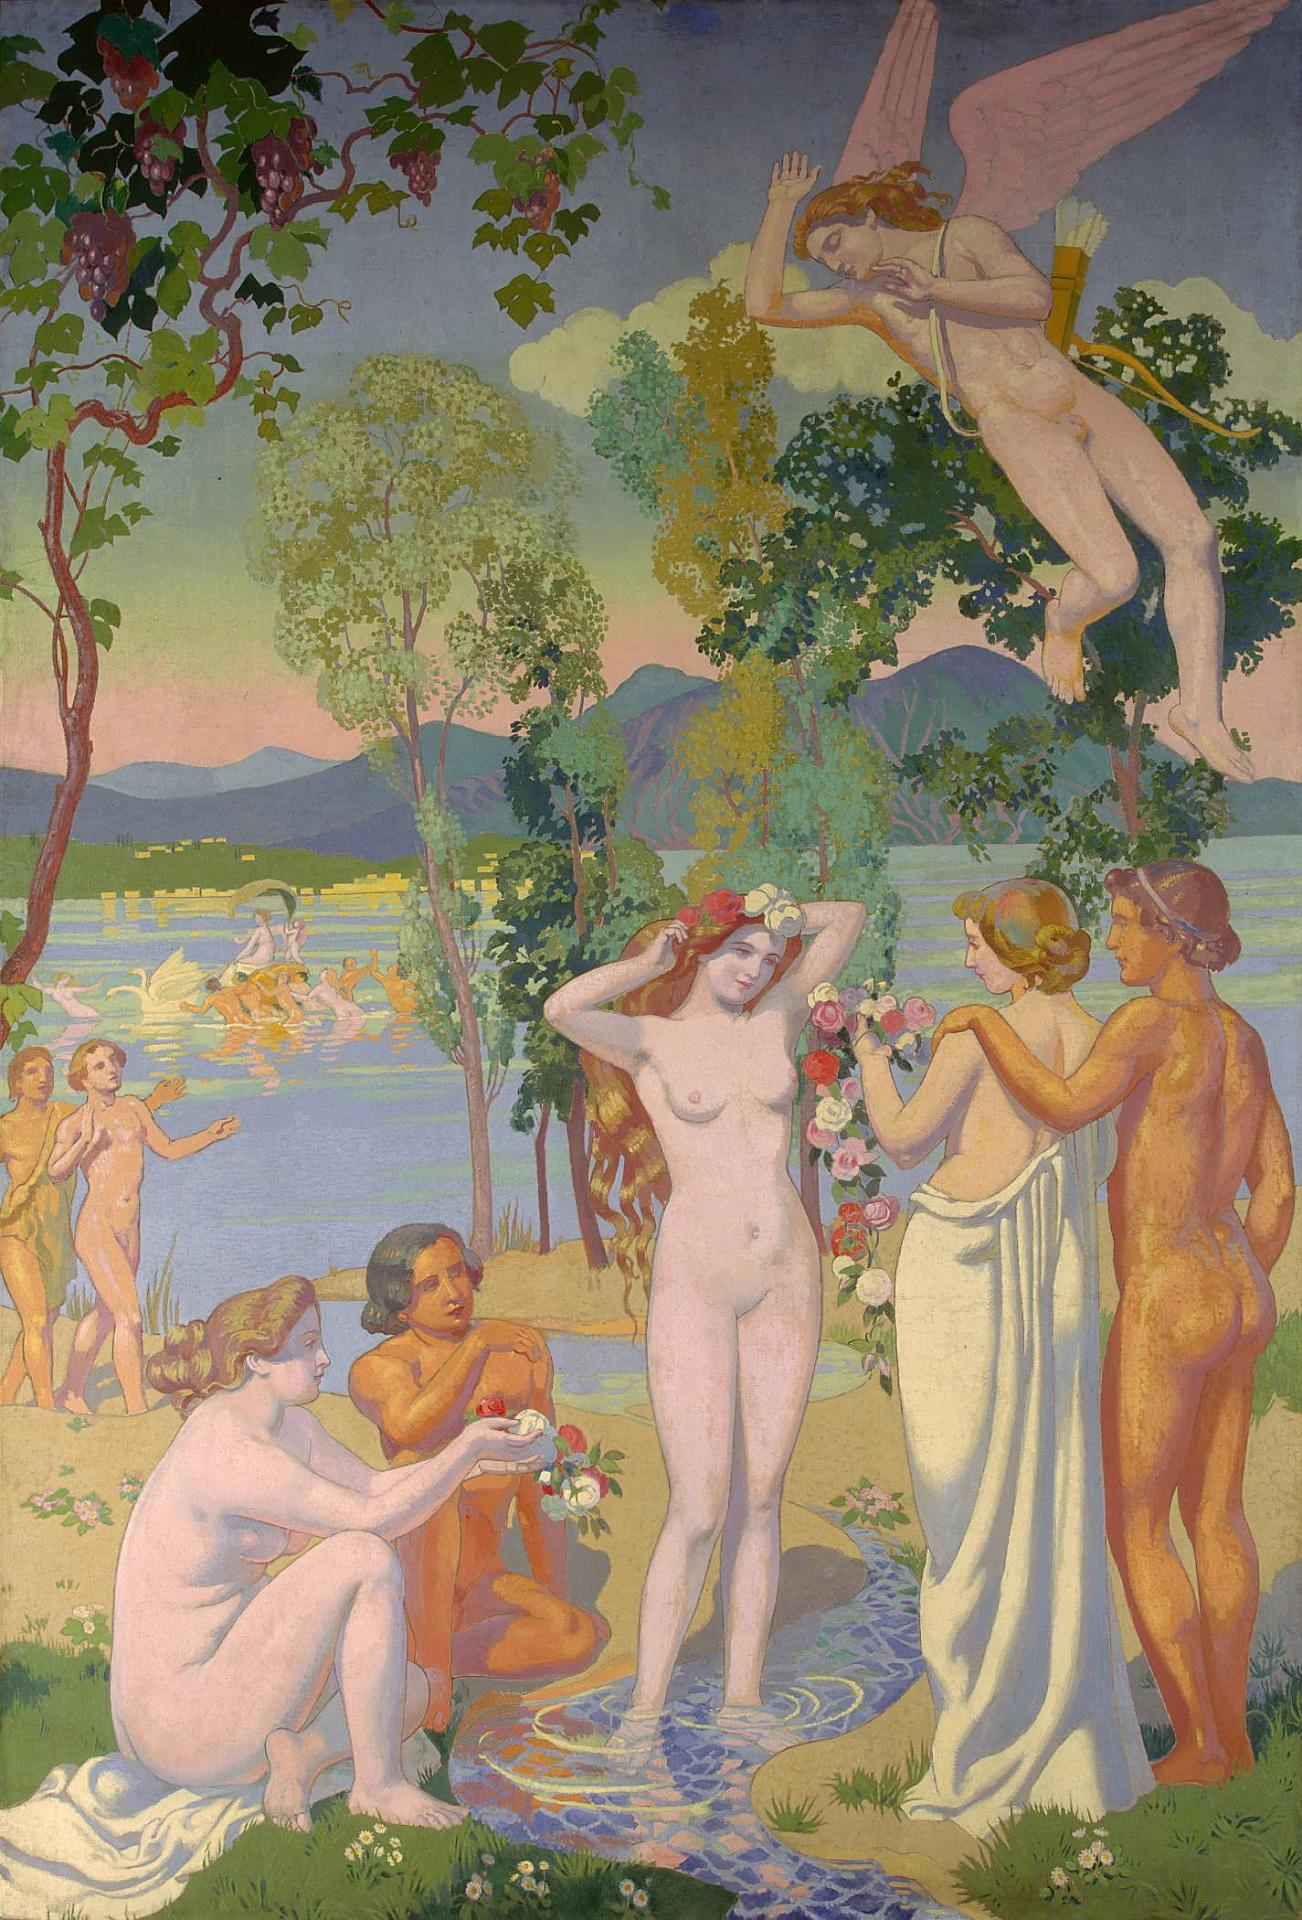 Psyche Panel 1 — Eros is Struck by Psyche's Beauty, 1908 — Maurice Denis